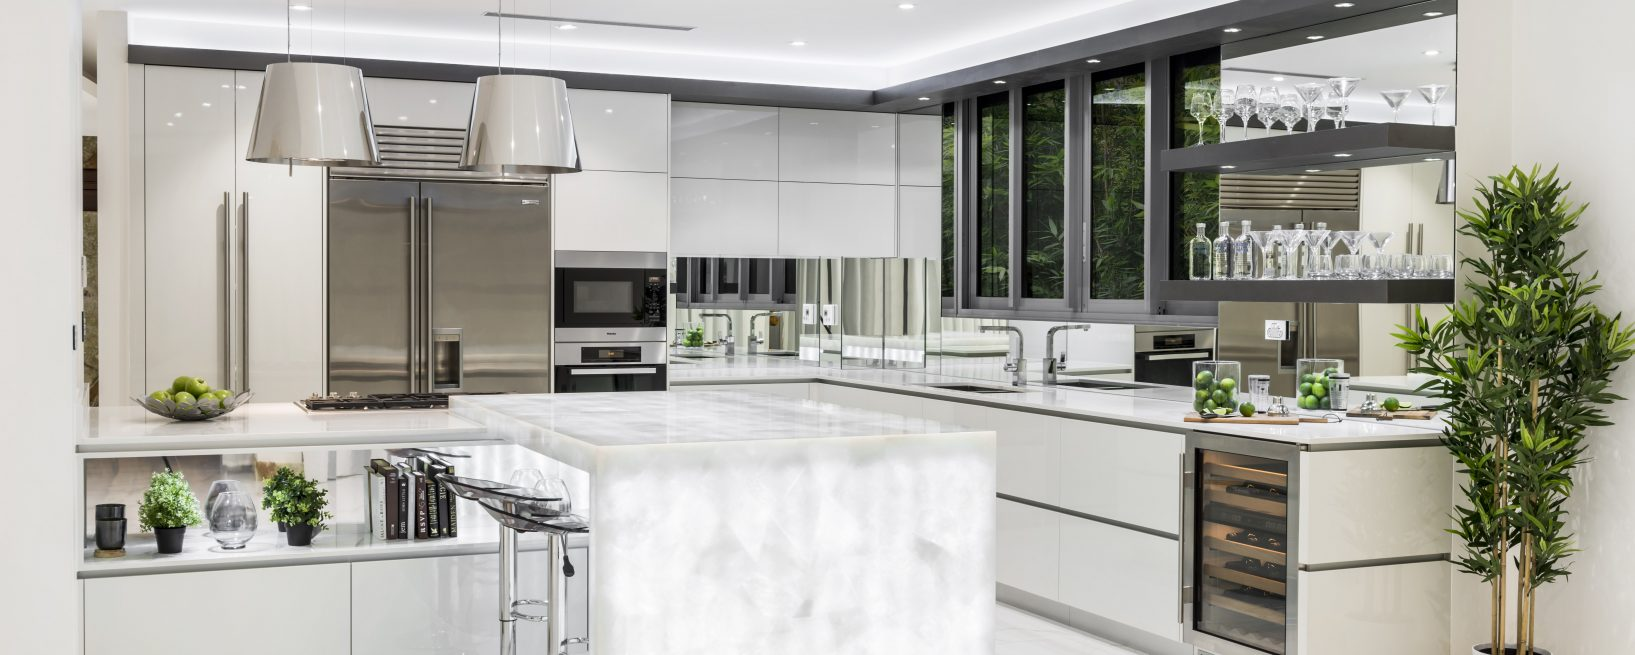 Luxury Kitchen Design Sydney Brisbane Austrlialia